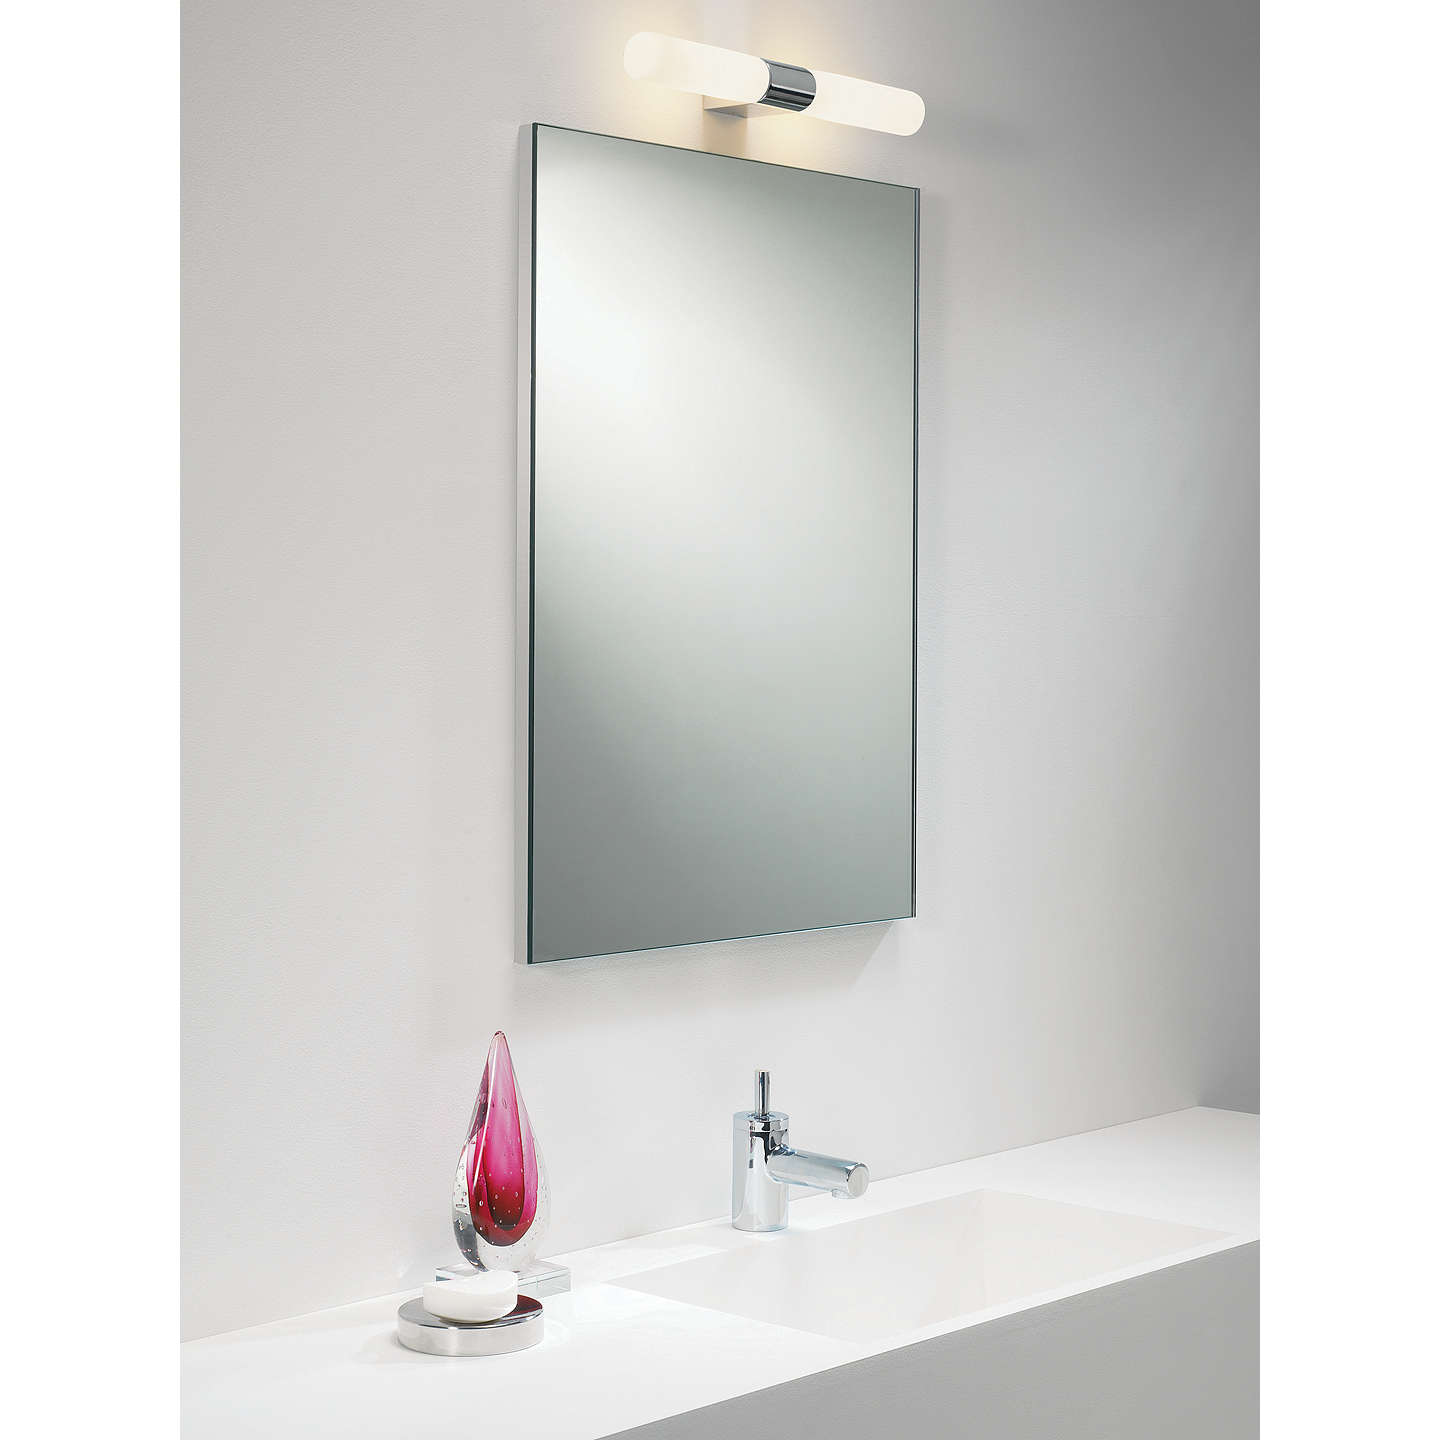 lighted vanity mirrors for bathroom astro mirror bathroom light at lewis 23700